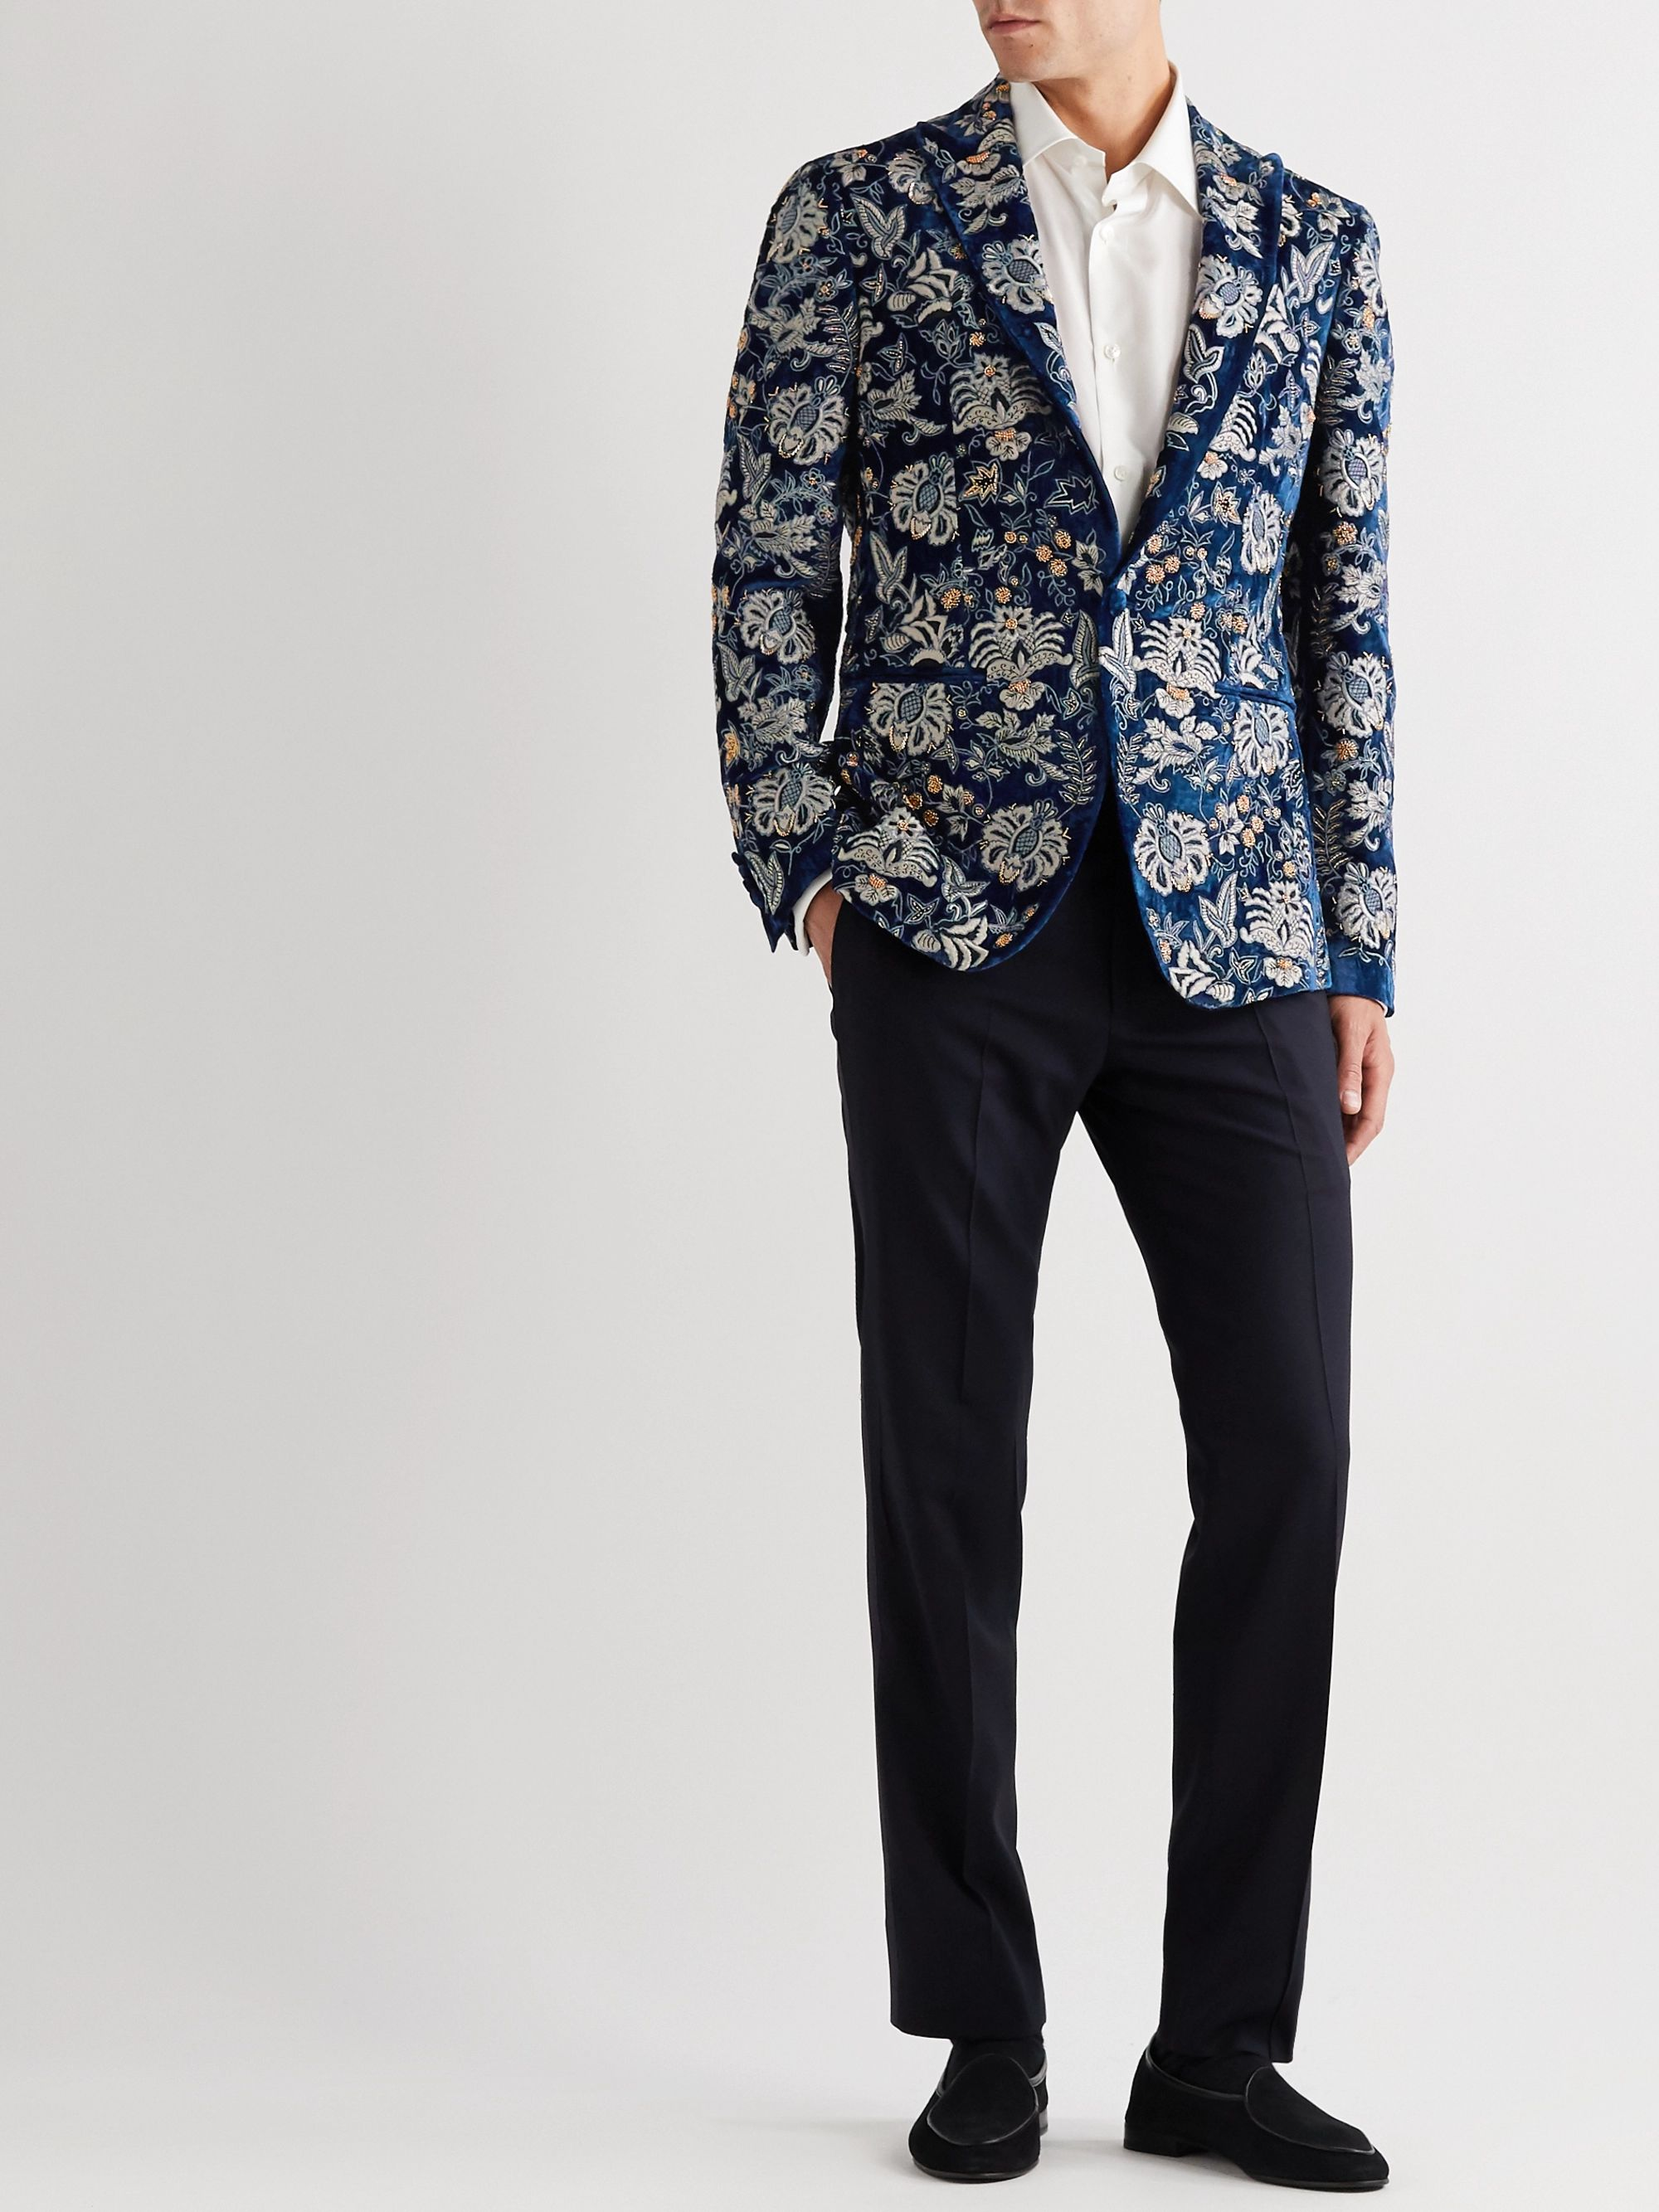 ETRO Slim-Fit Embellished Velvet Tuxedo Jacket